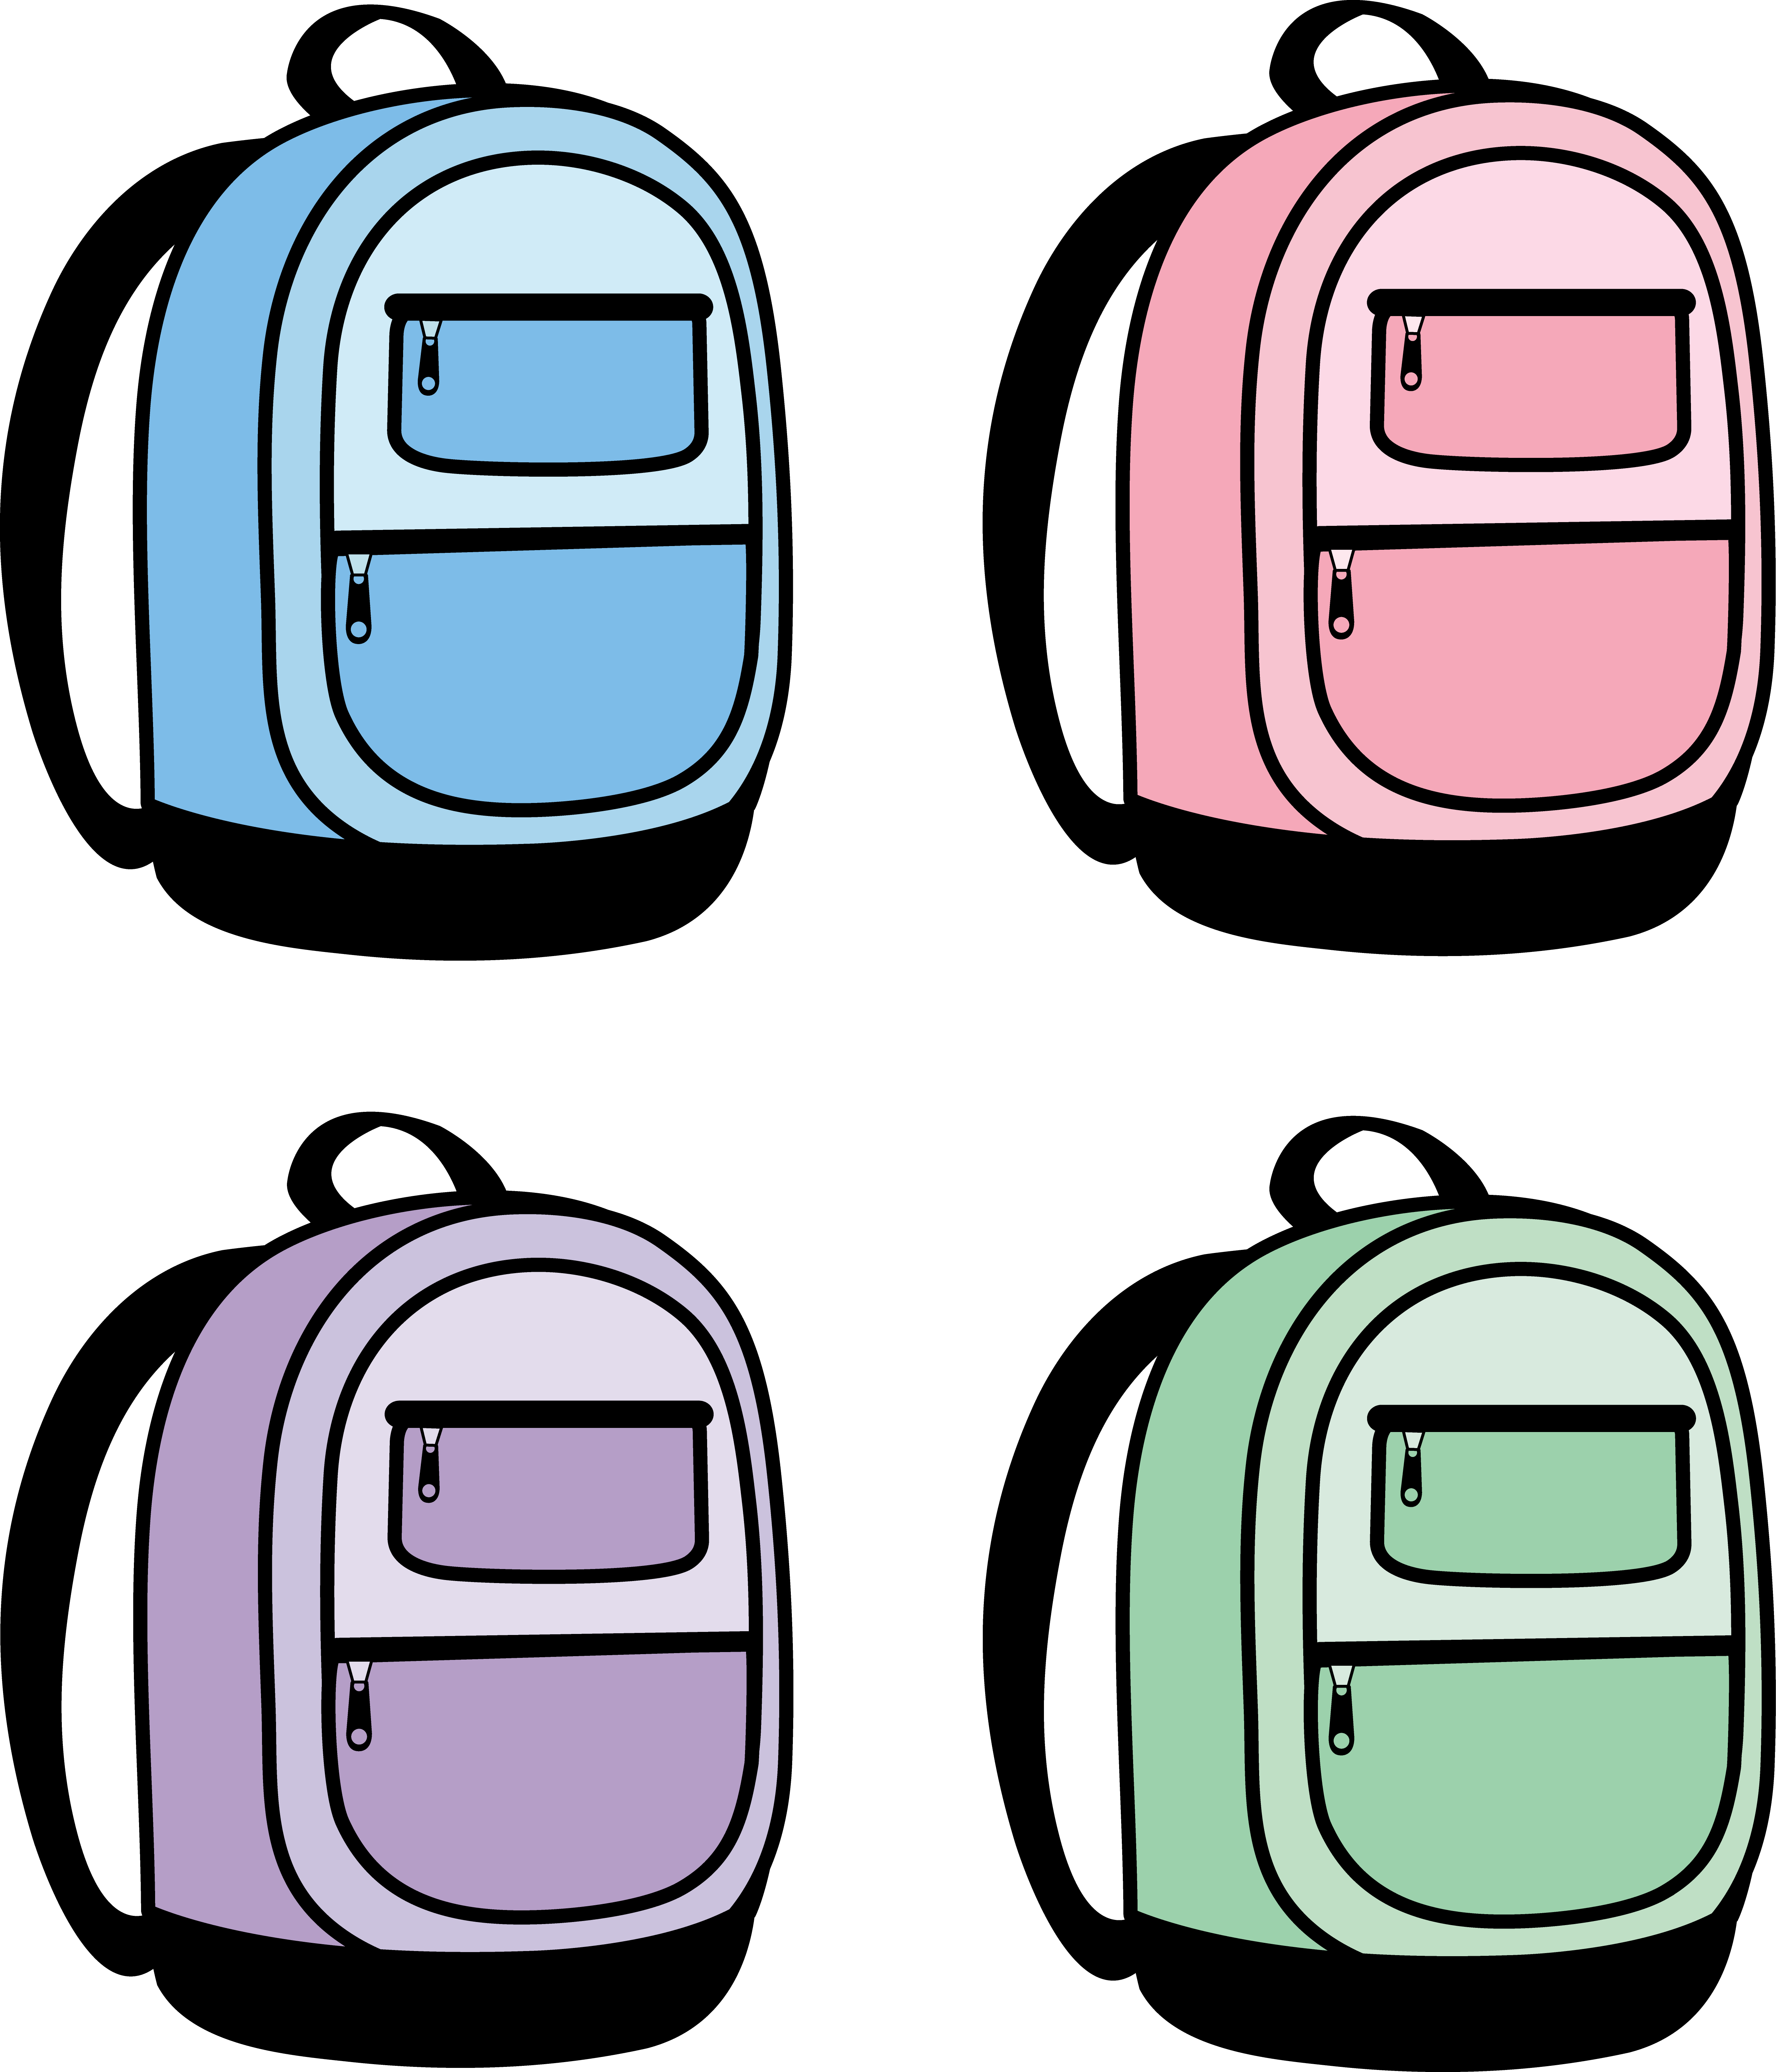 clip art backpack viewing clipart panda free clipart images rh clipartpanda com  backpack clipart images